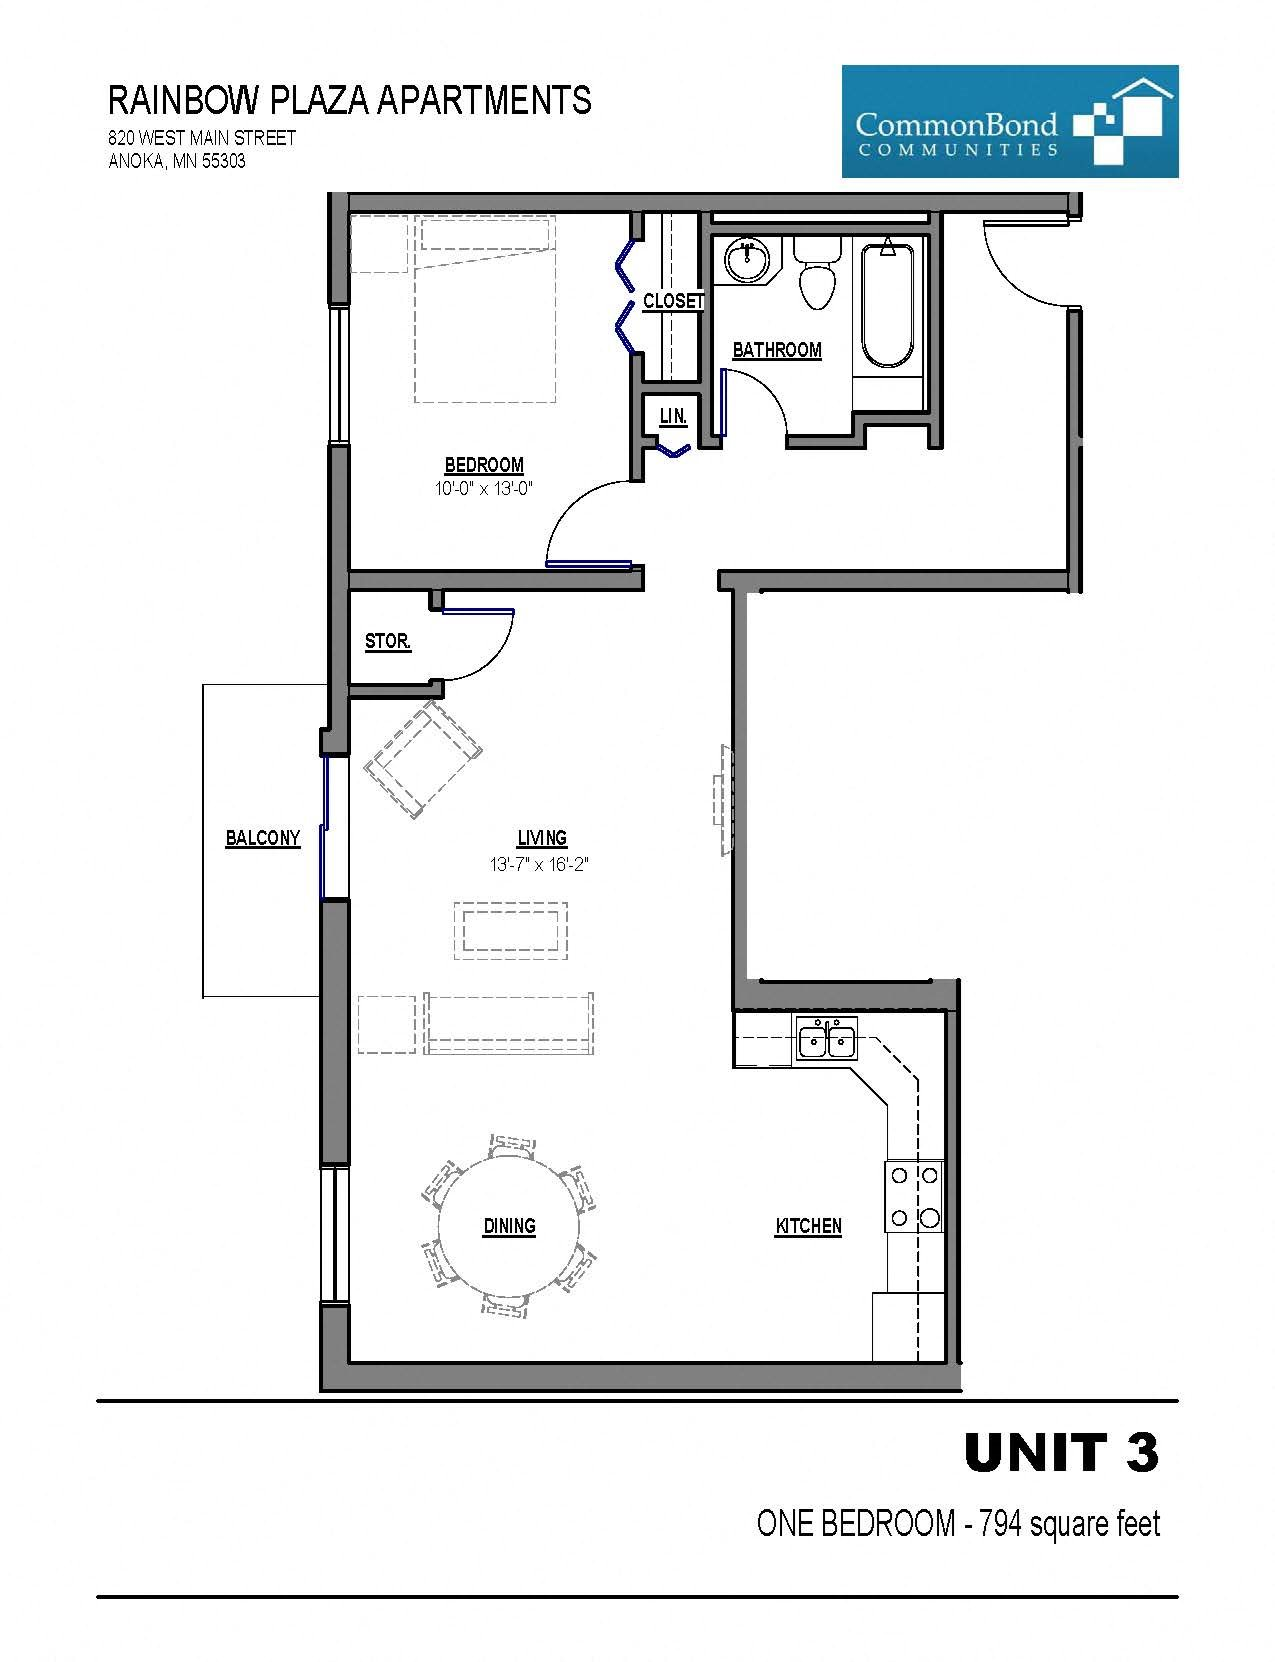 Unit 3 Floor Plan 3